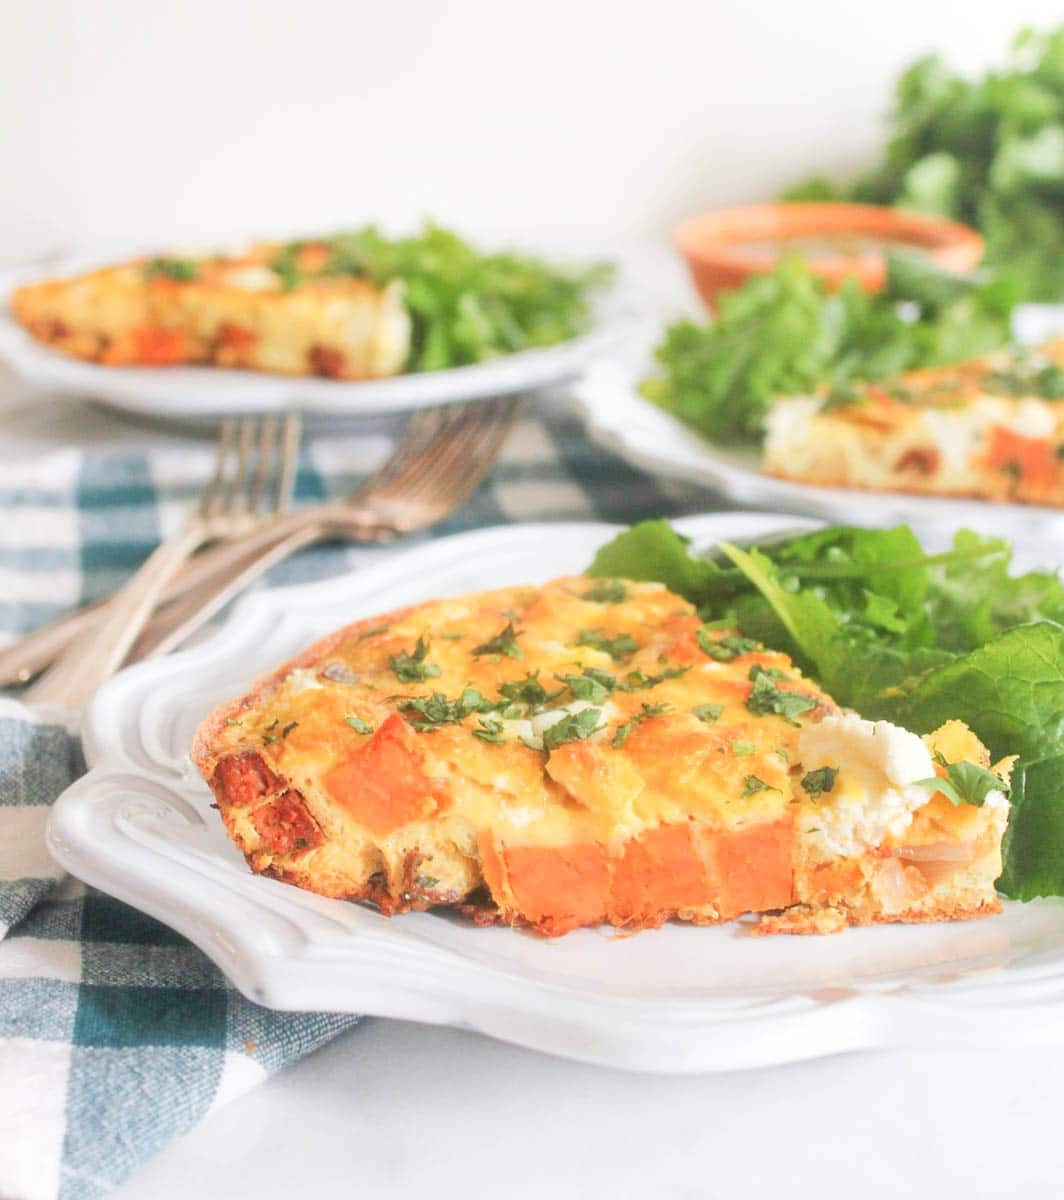 Healthy-Frittata-with-Sweet-Potatoes-Chicken-Sausage-and-Quinoa-4